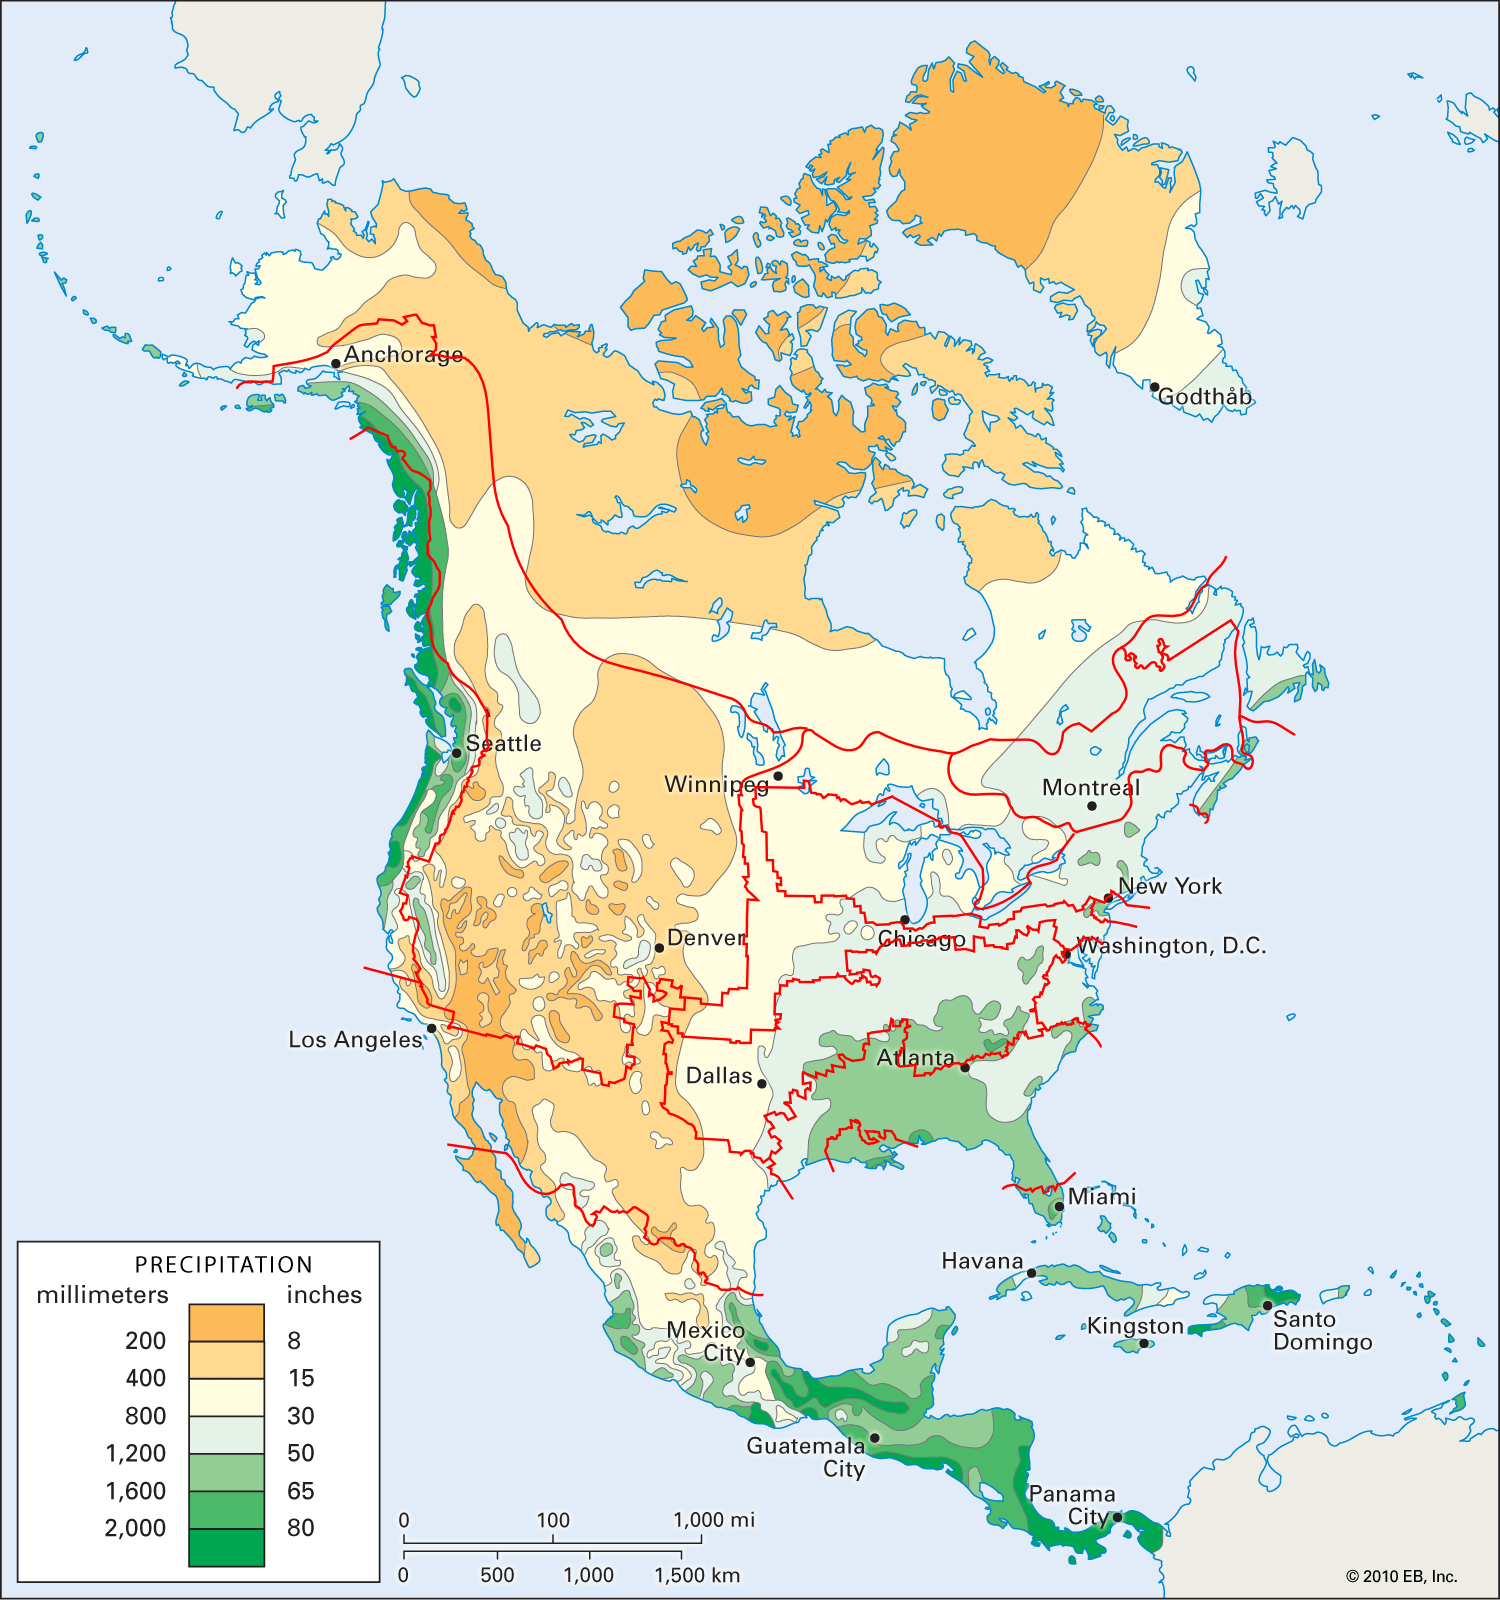 north american nations precip